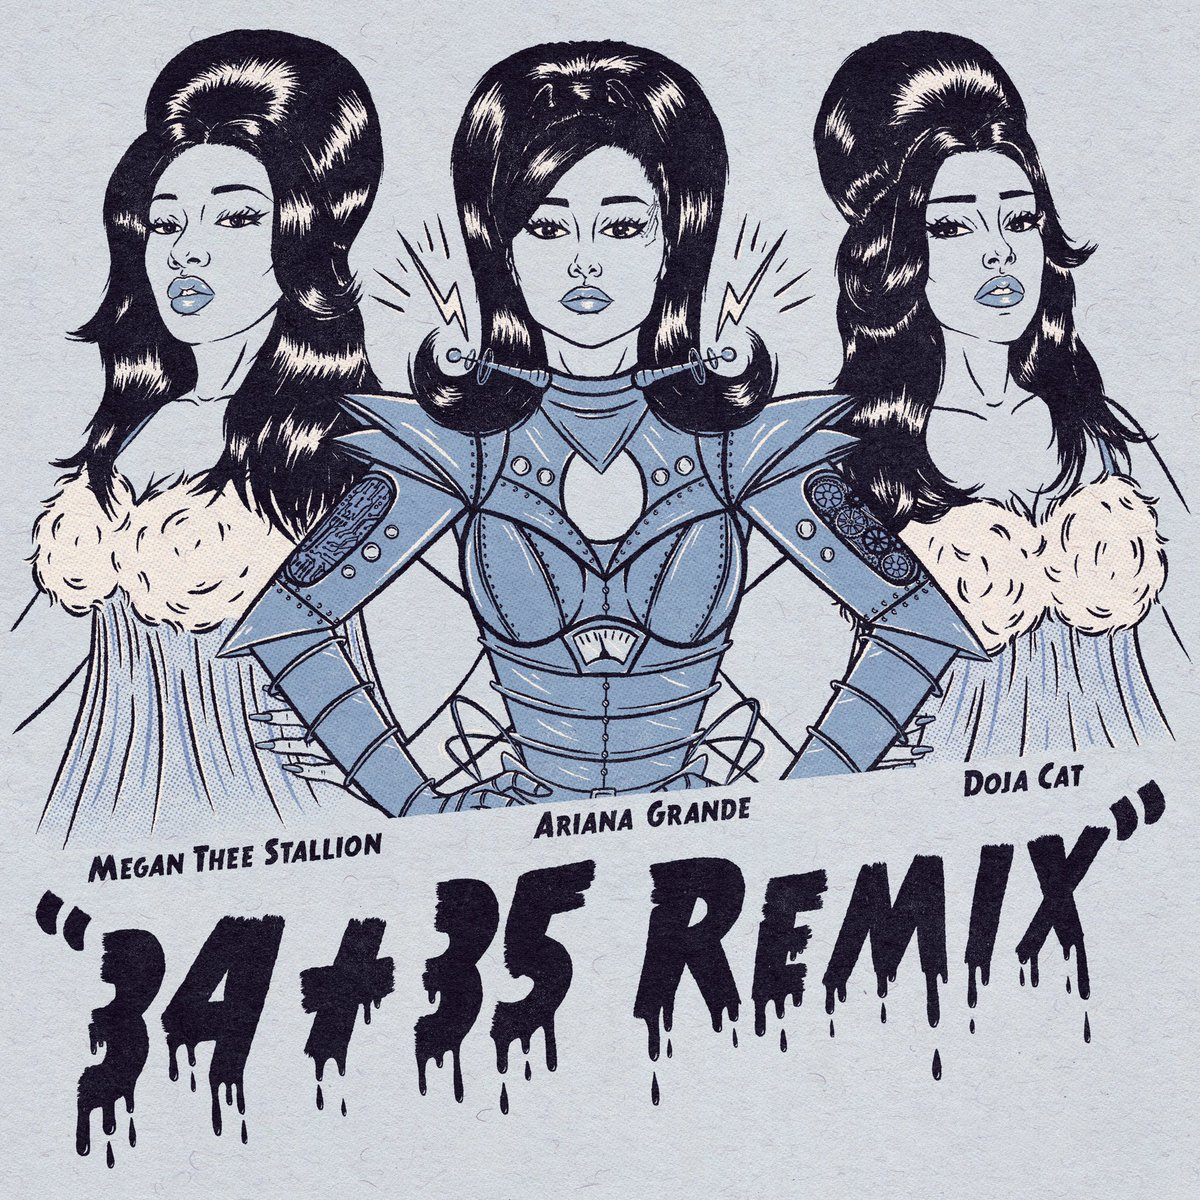 RT @theestallion: #3435REMIX @ArianaGrande @DojaCat TONIGHT 🔥💙 https://t.co/ElS65VGU7q https://t.co/htp1NUnTeD